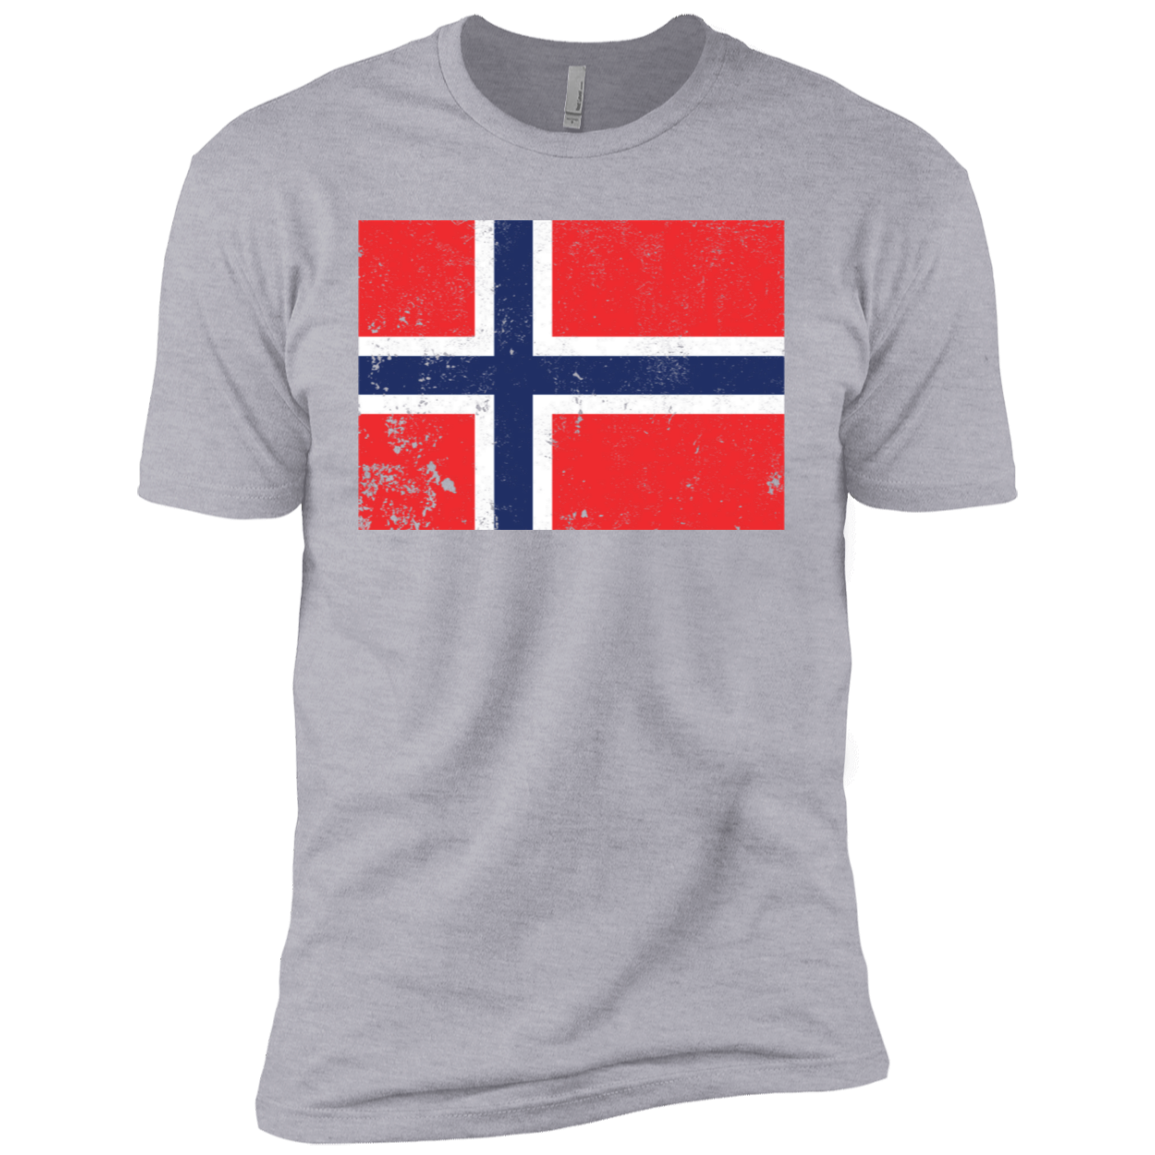 Norway Men's Classic Tee